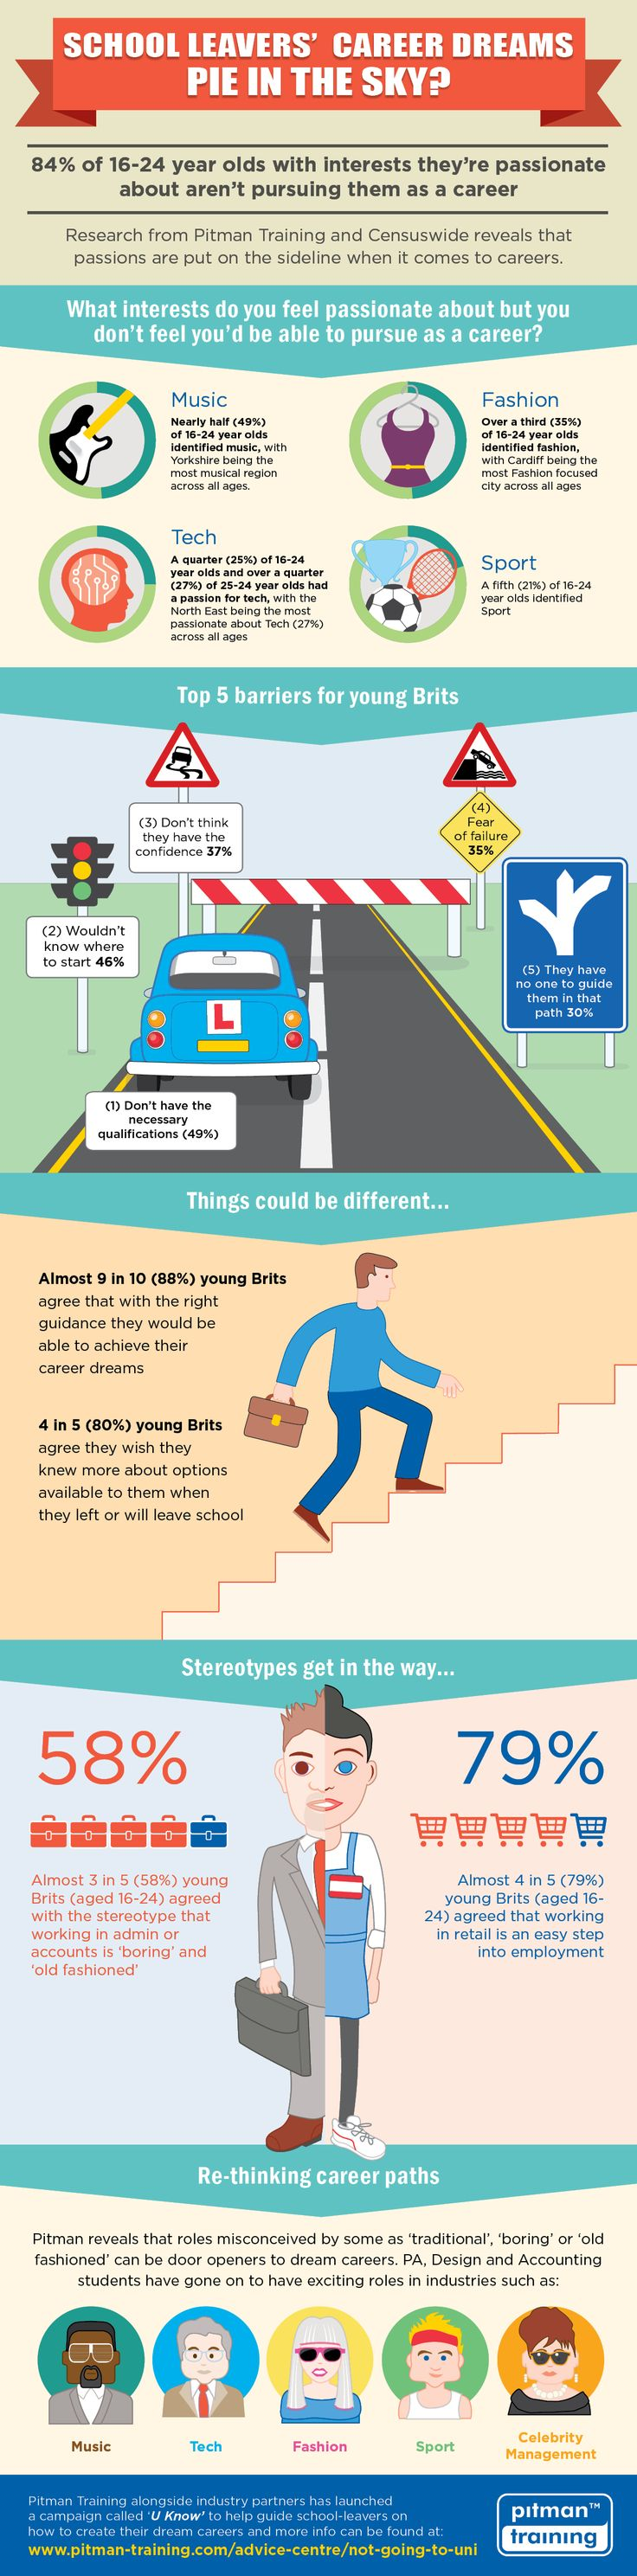 17 best images about cultivating careers the muse notgoingtouni schoolleavers careers